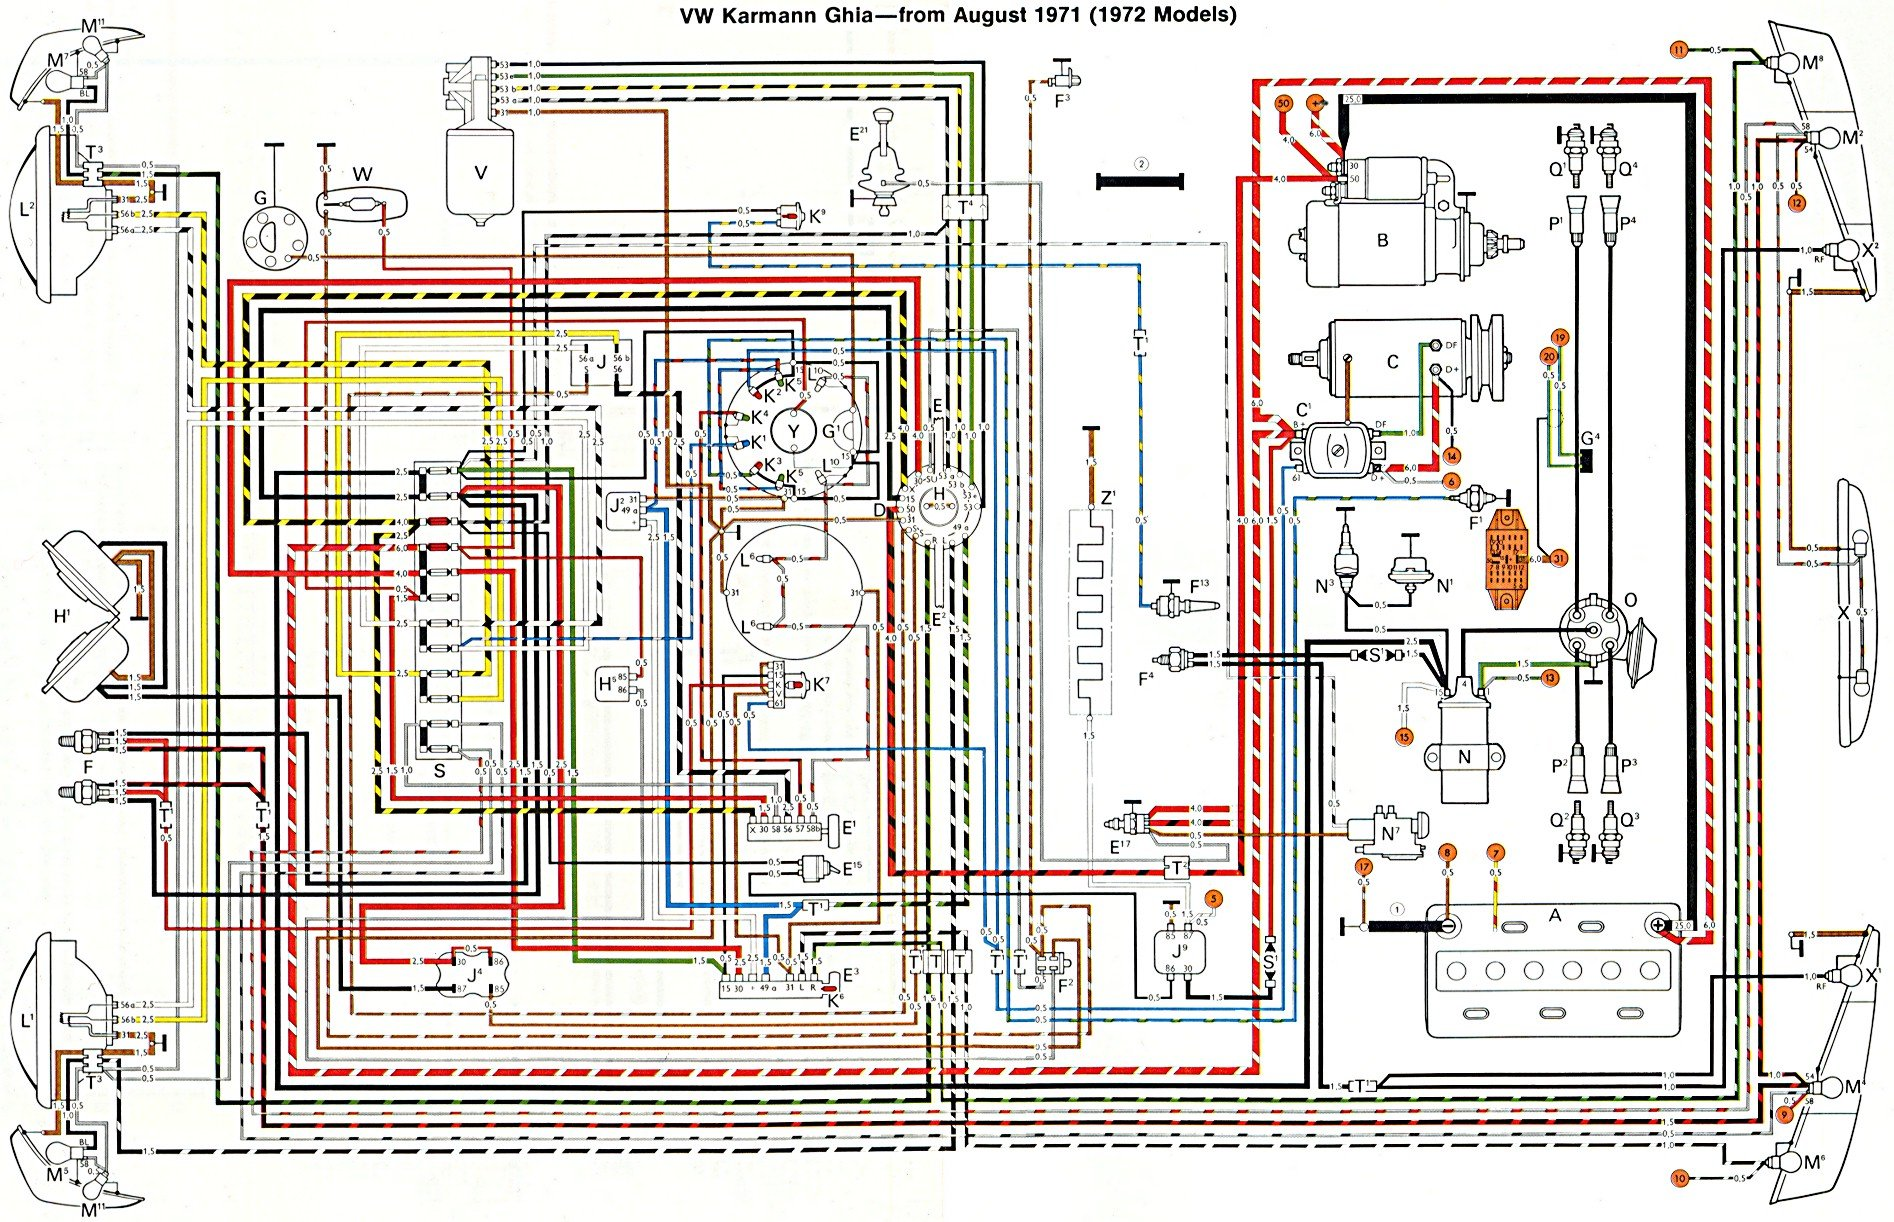 72ghia 1971 karmann ghia wiring diagram karmann ghia wiring harness Wiring Harness Diagram at metegol.co